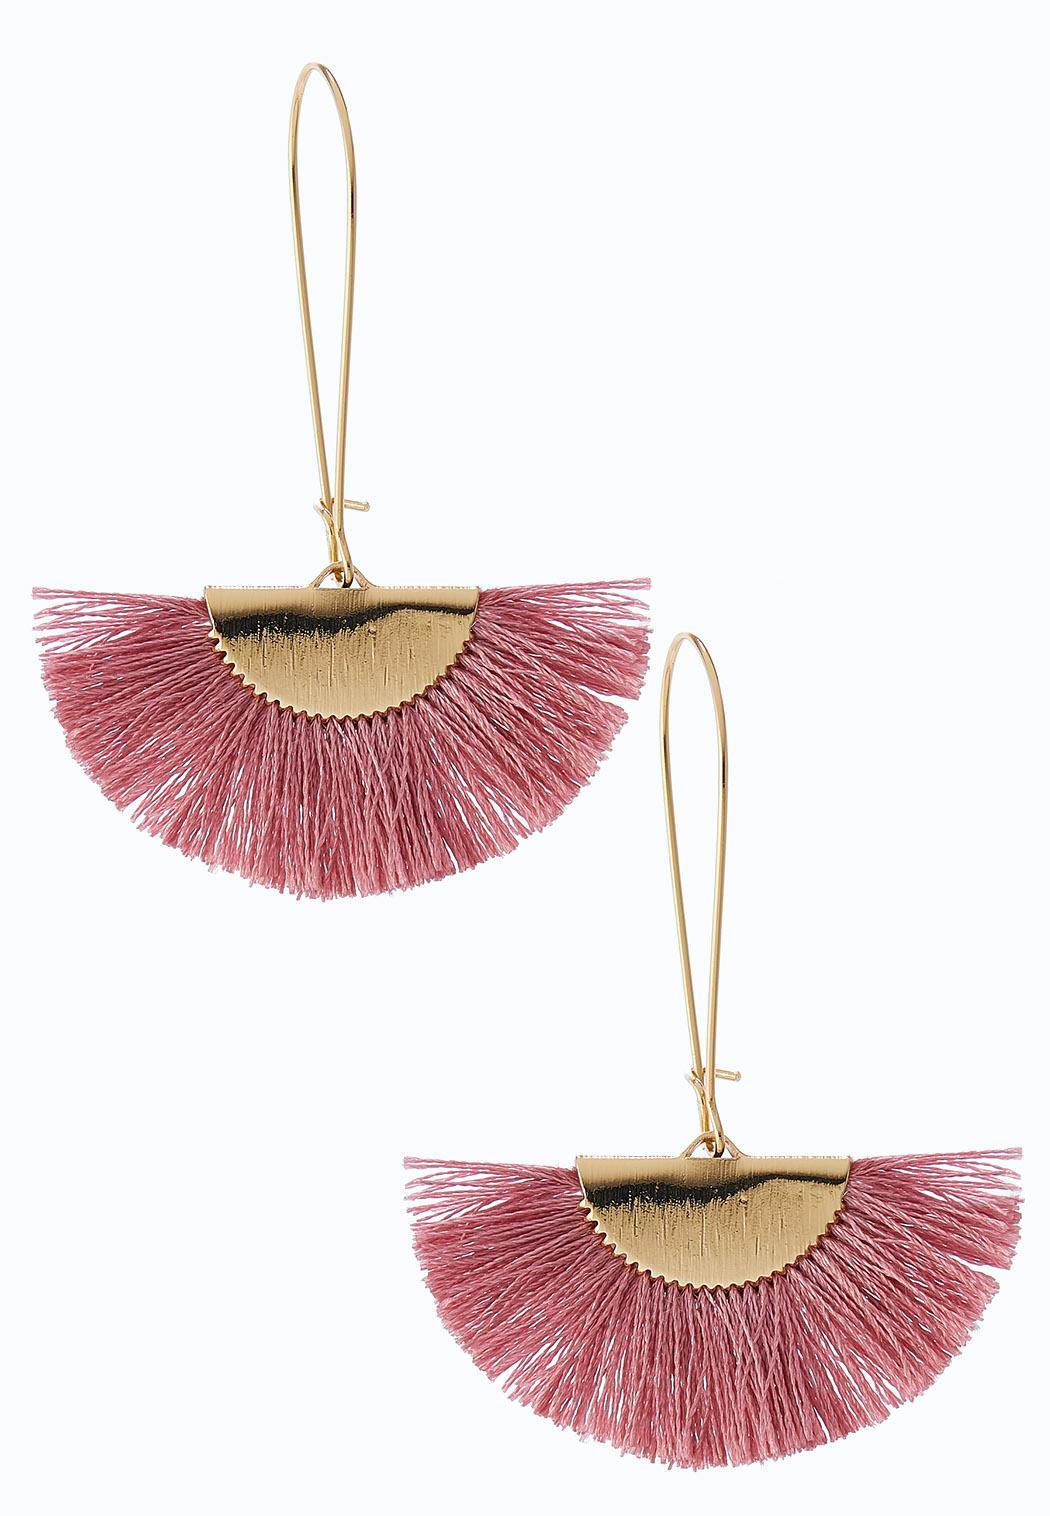 Wispy Tassel Fan Earrings